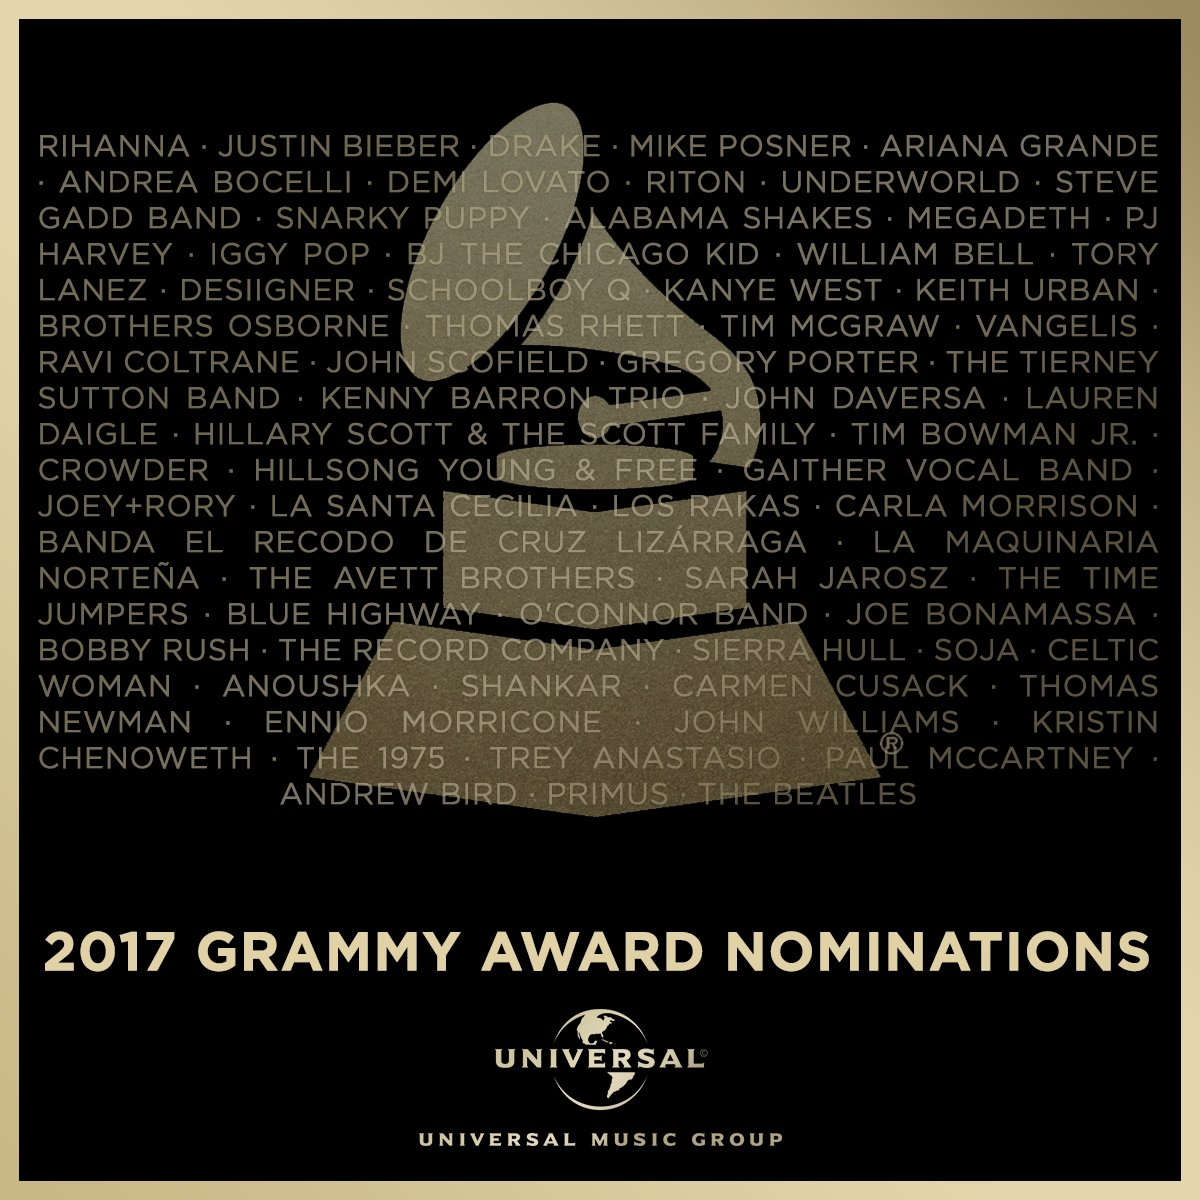 Congrats to all of our writers and artists nominated for the 59th Annual #GRAMMYs! #MusicIsUniversal https://t.co/3NXXUBeMYQ